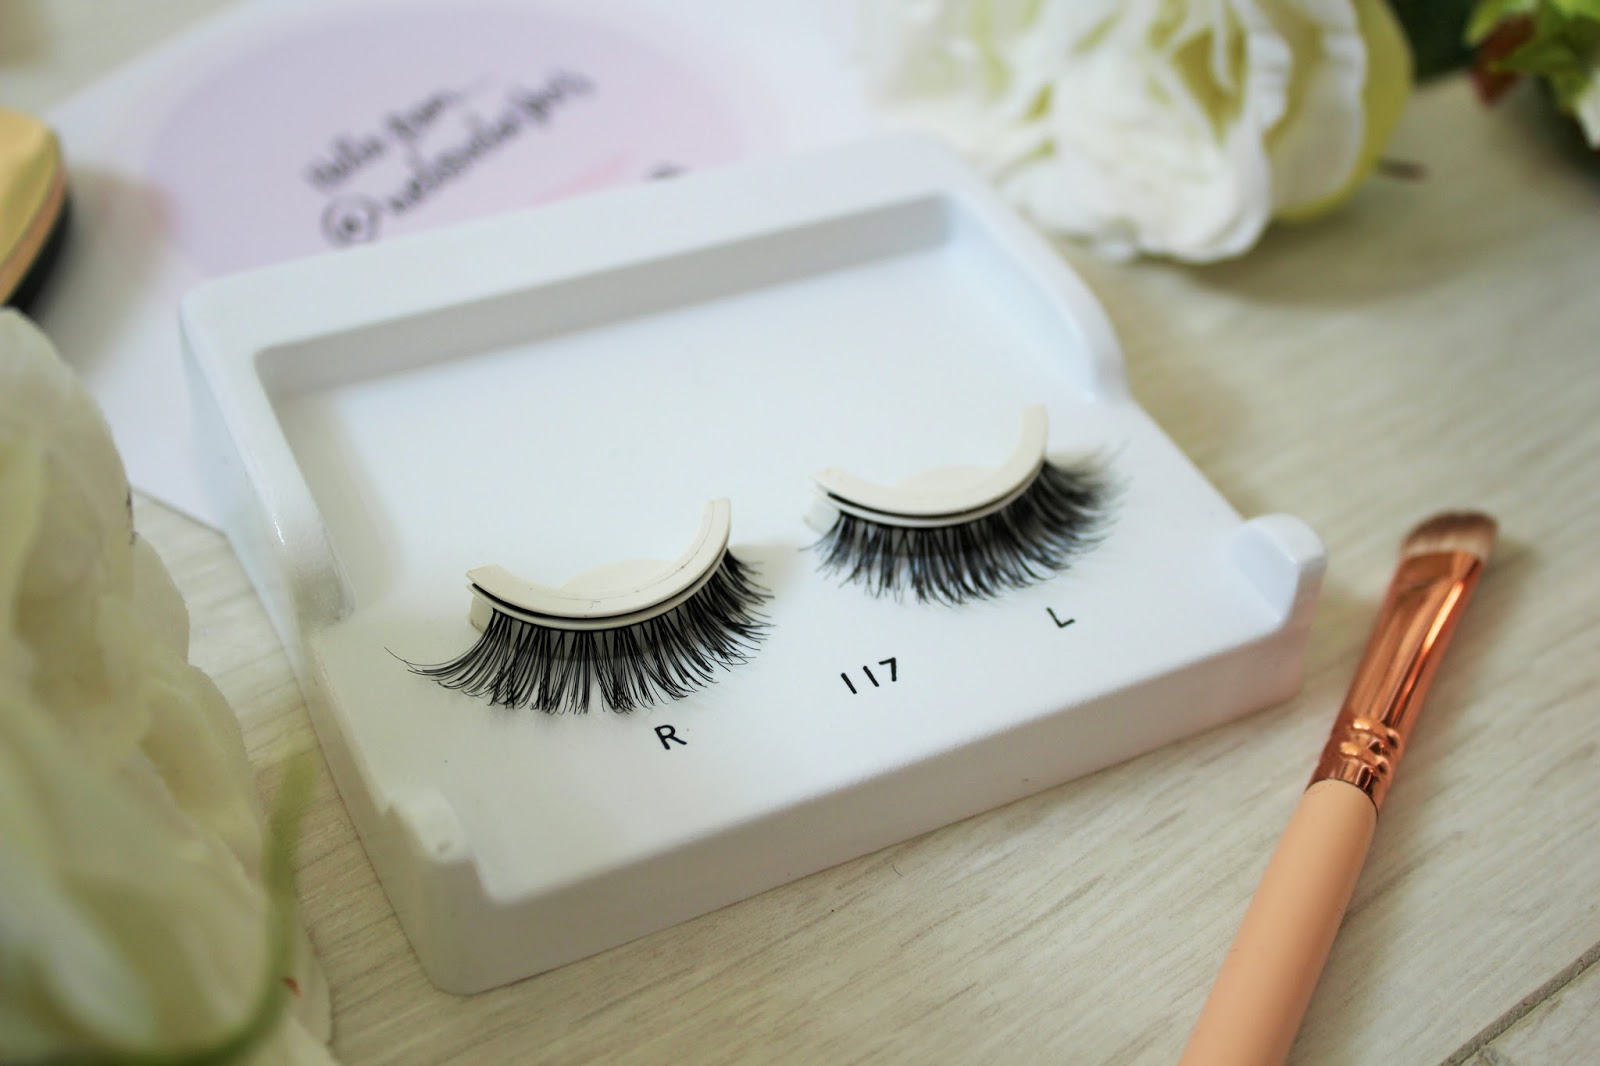 Eylure lashes from falseeyelashes.co.uk - 4 - Pre-glued Texture Lashes in 117